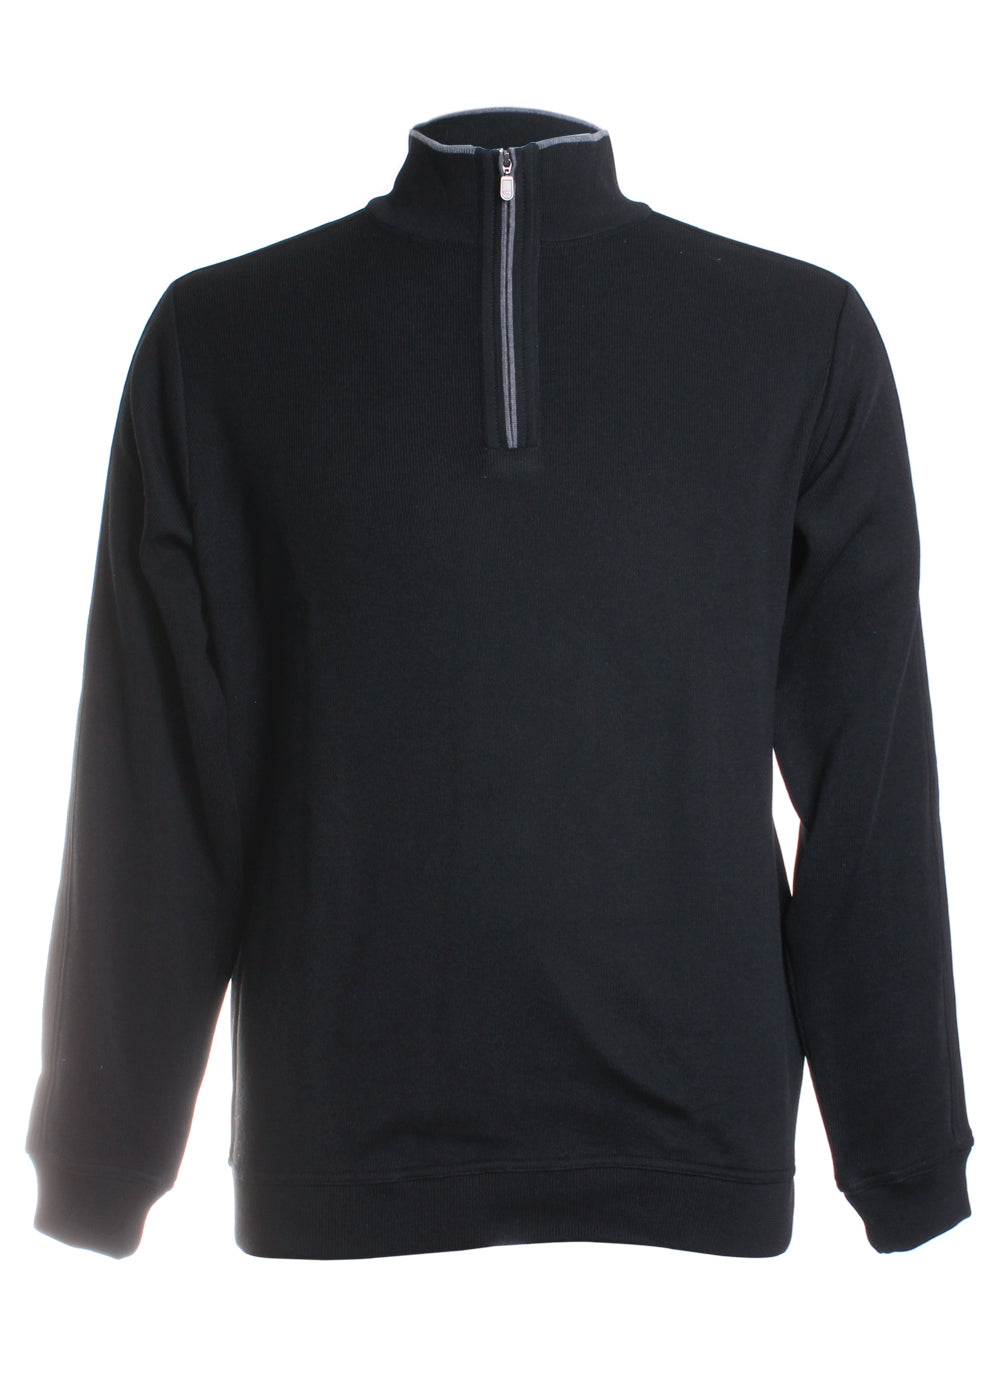 St. Croix Quarter-Zip Sweater in Black